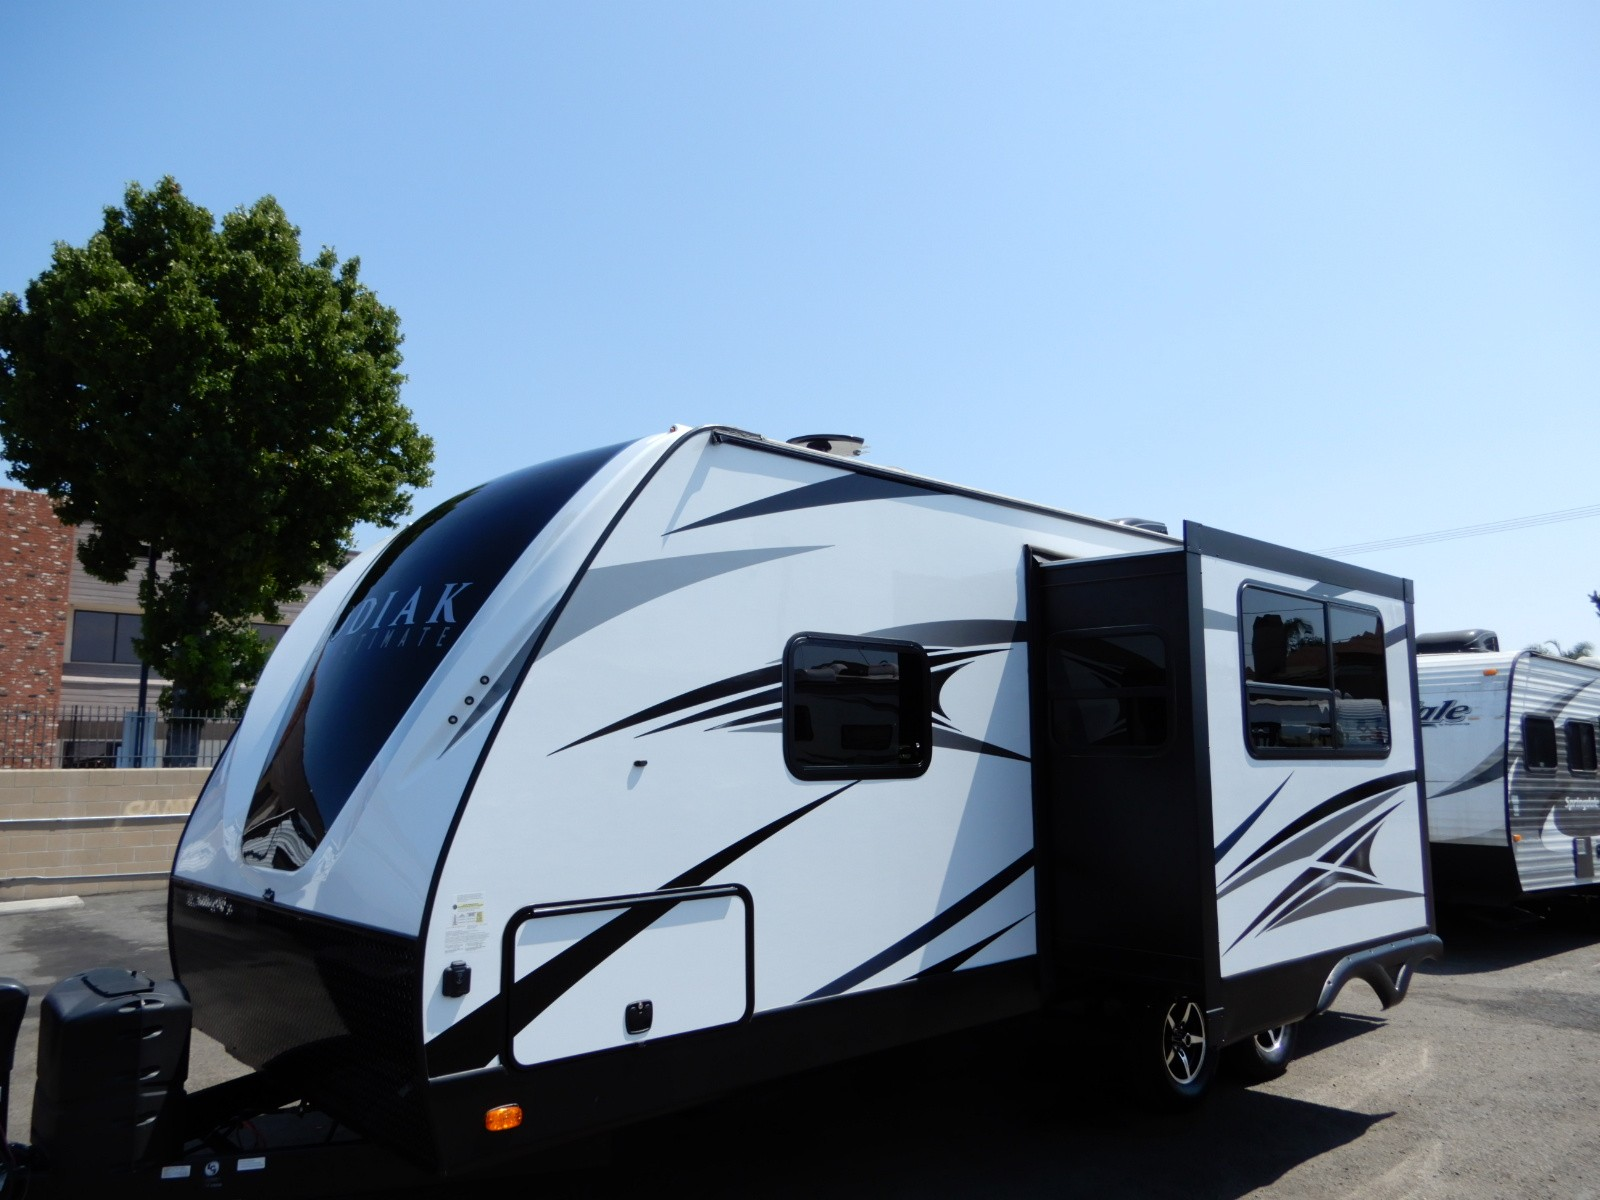 Sport Auto RV specializes in family fun at affordable prices! Pre